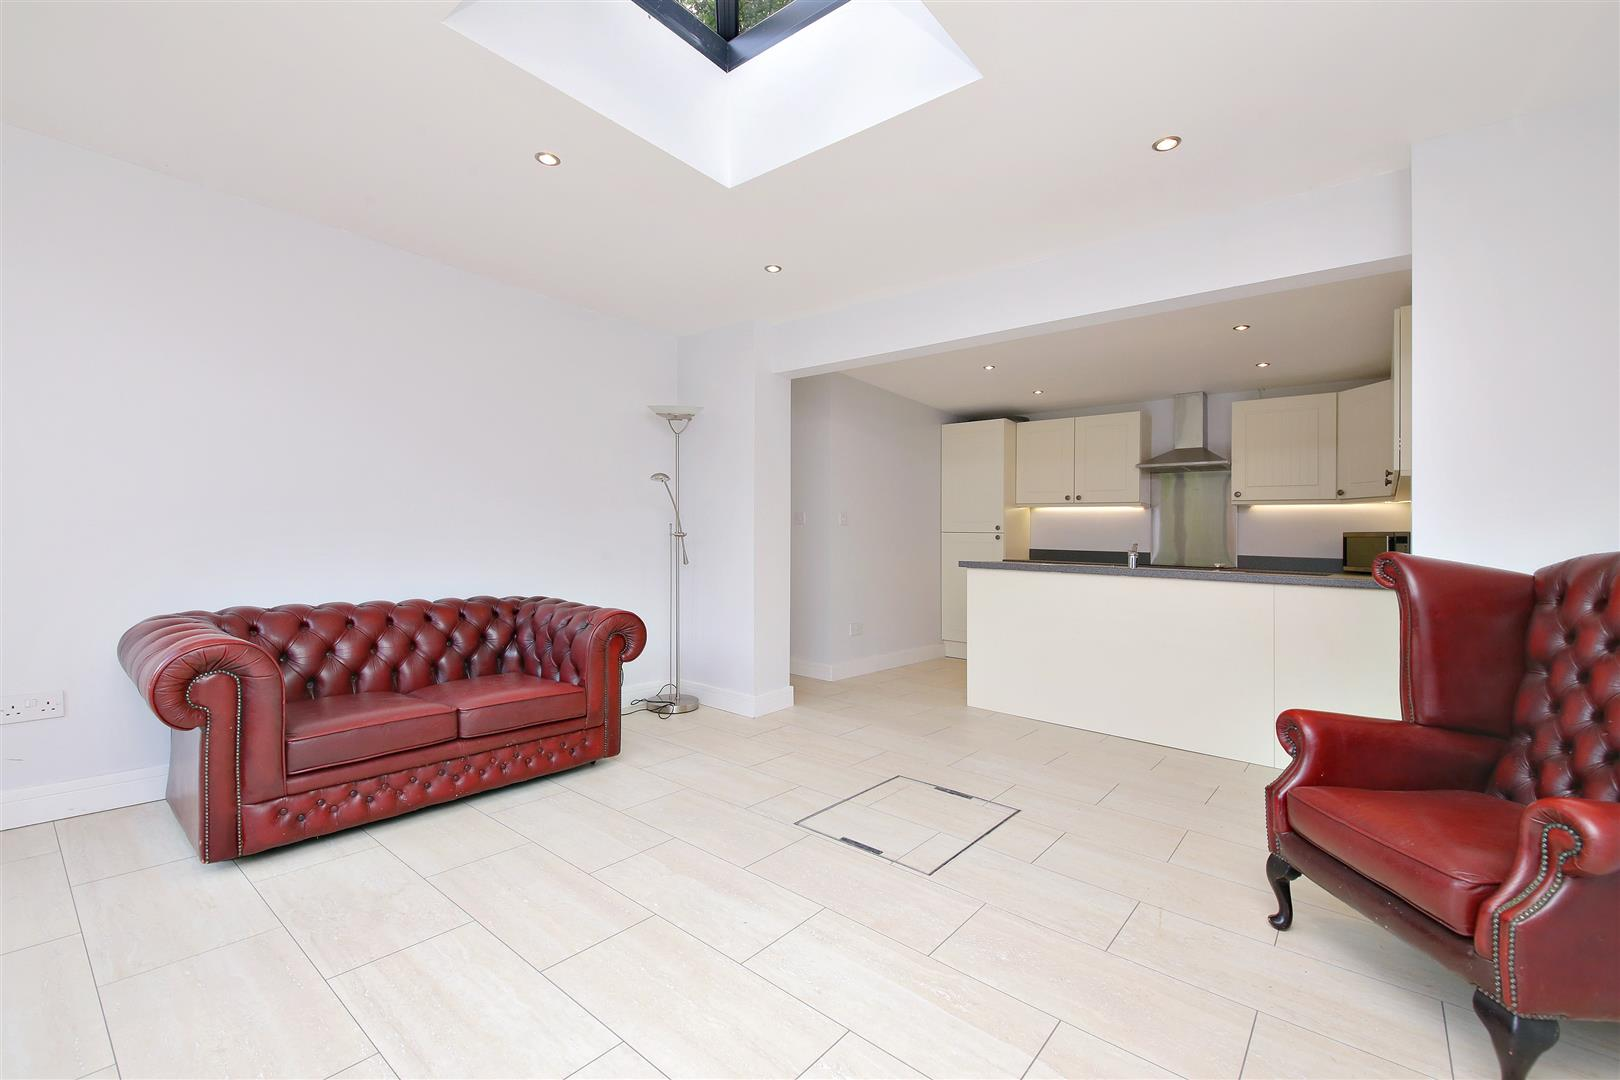 3 bed for sale in Station Road, Bricket Wood - (Property Image 7)